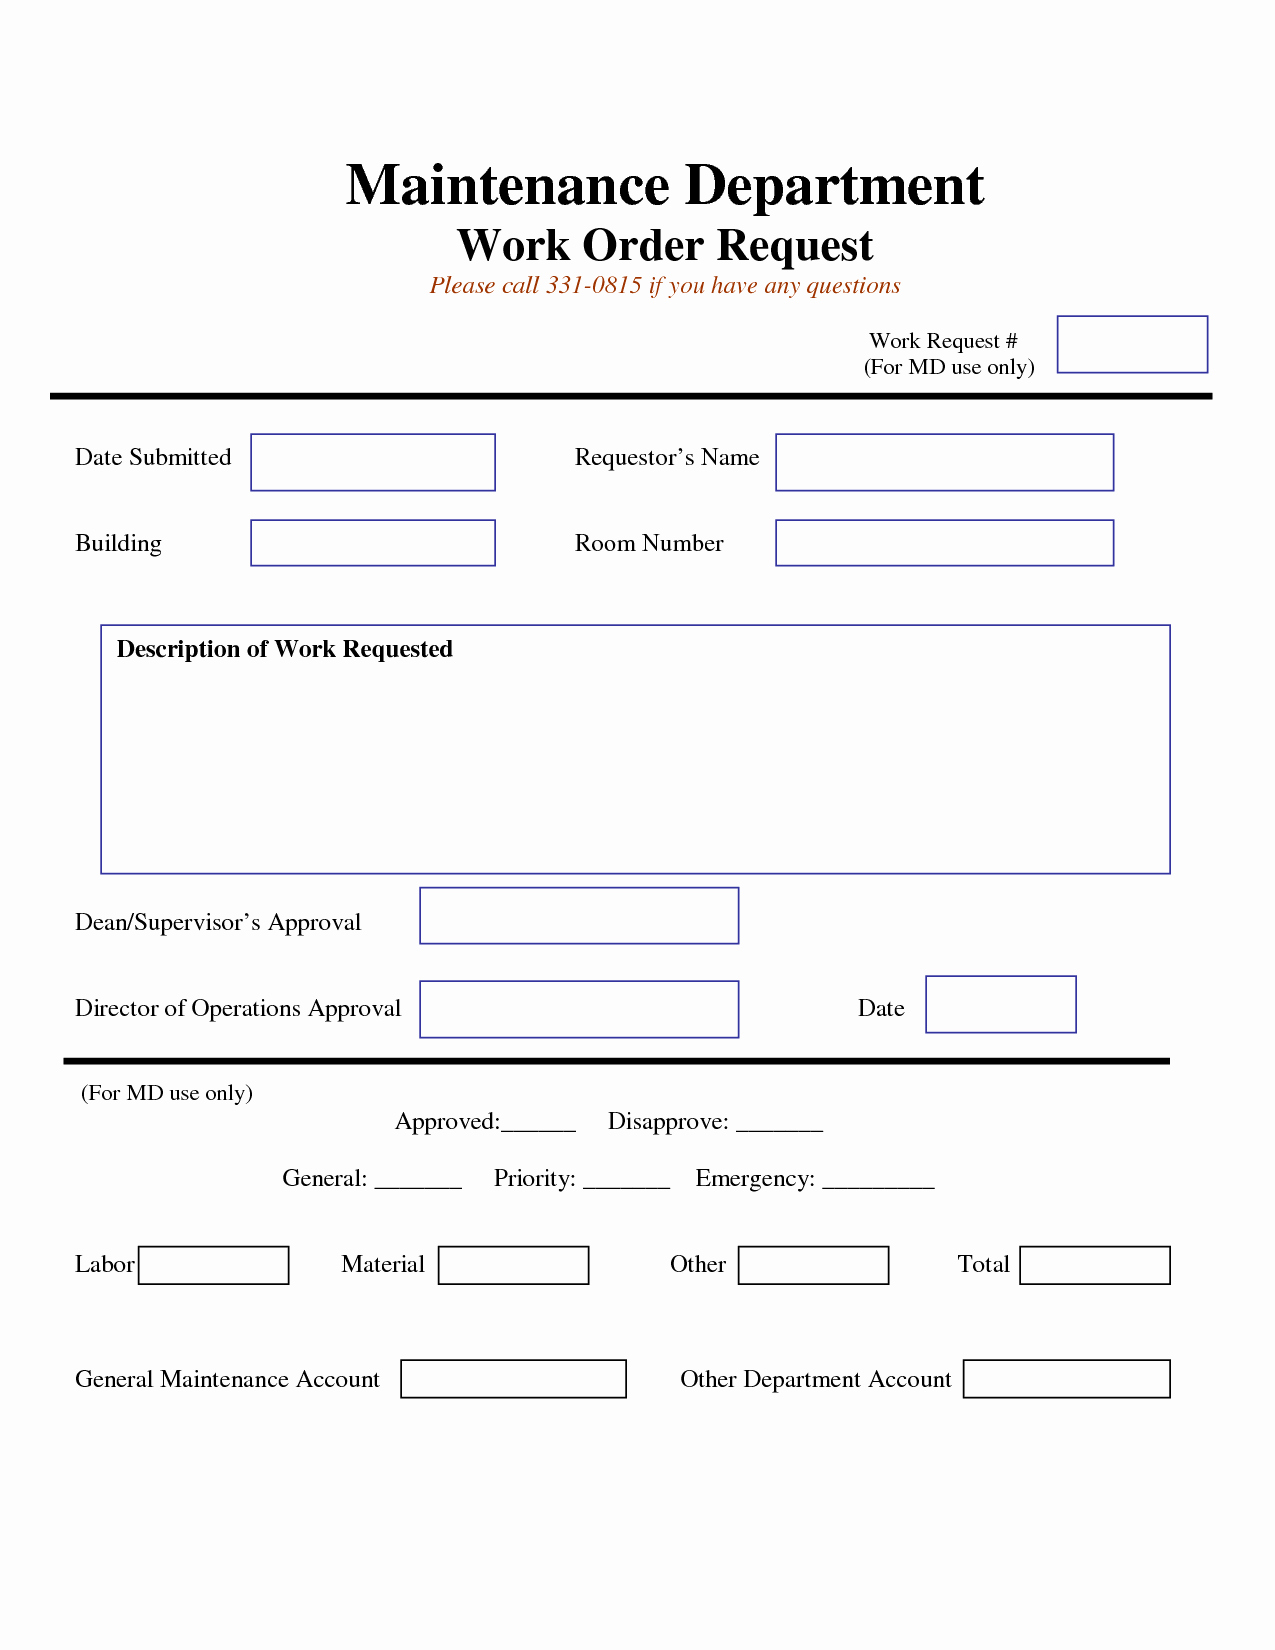 Maintenance Request form Template Unique Work Request form